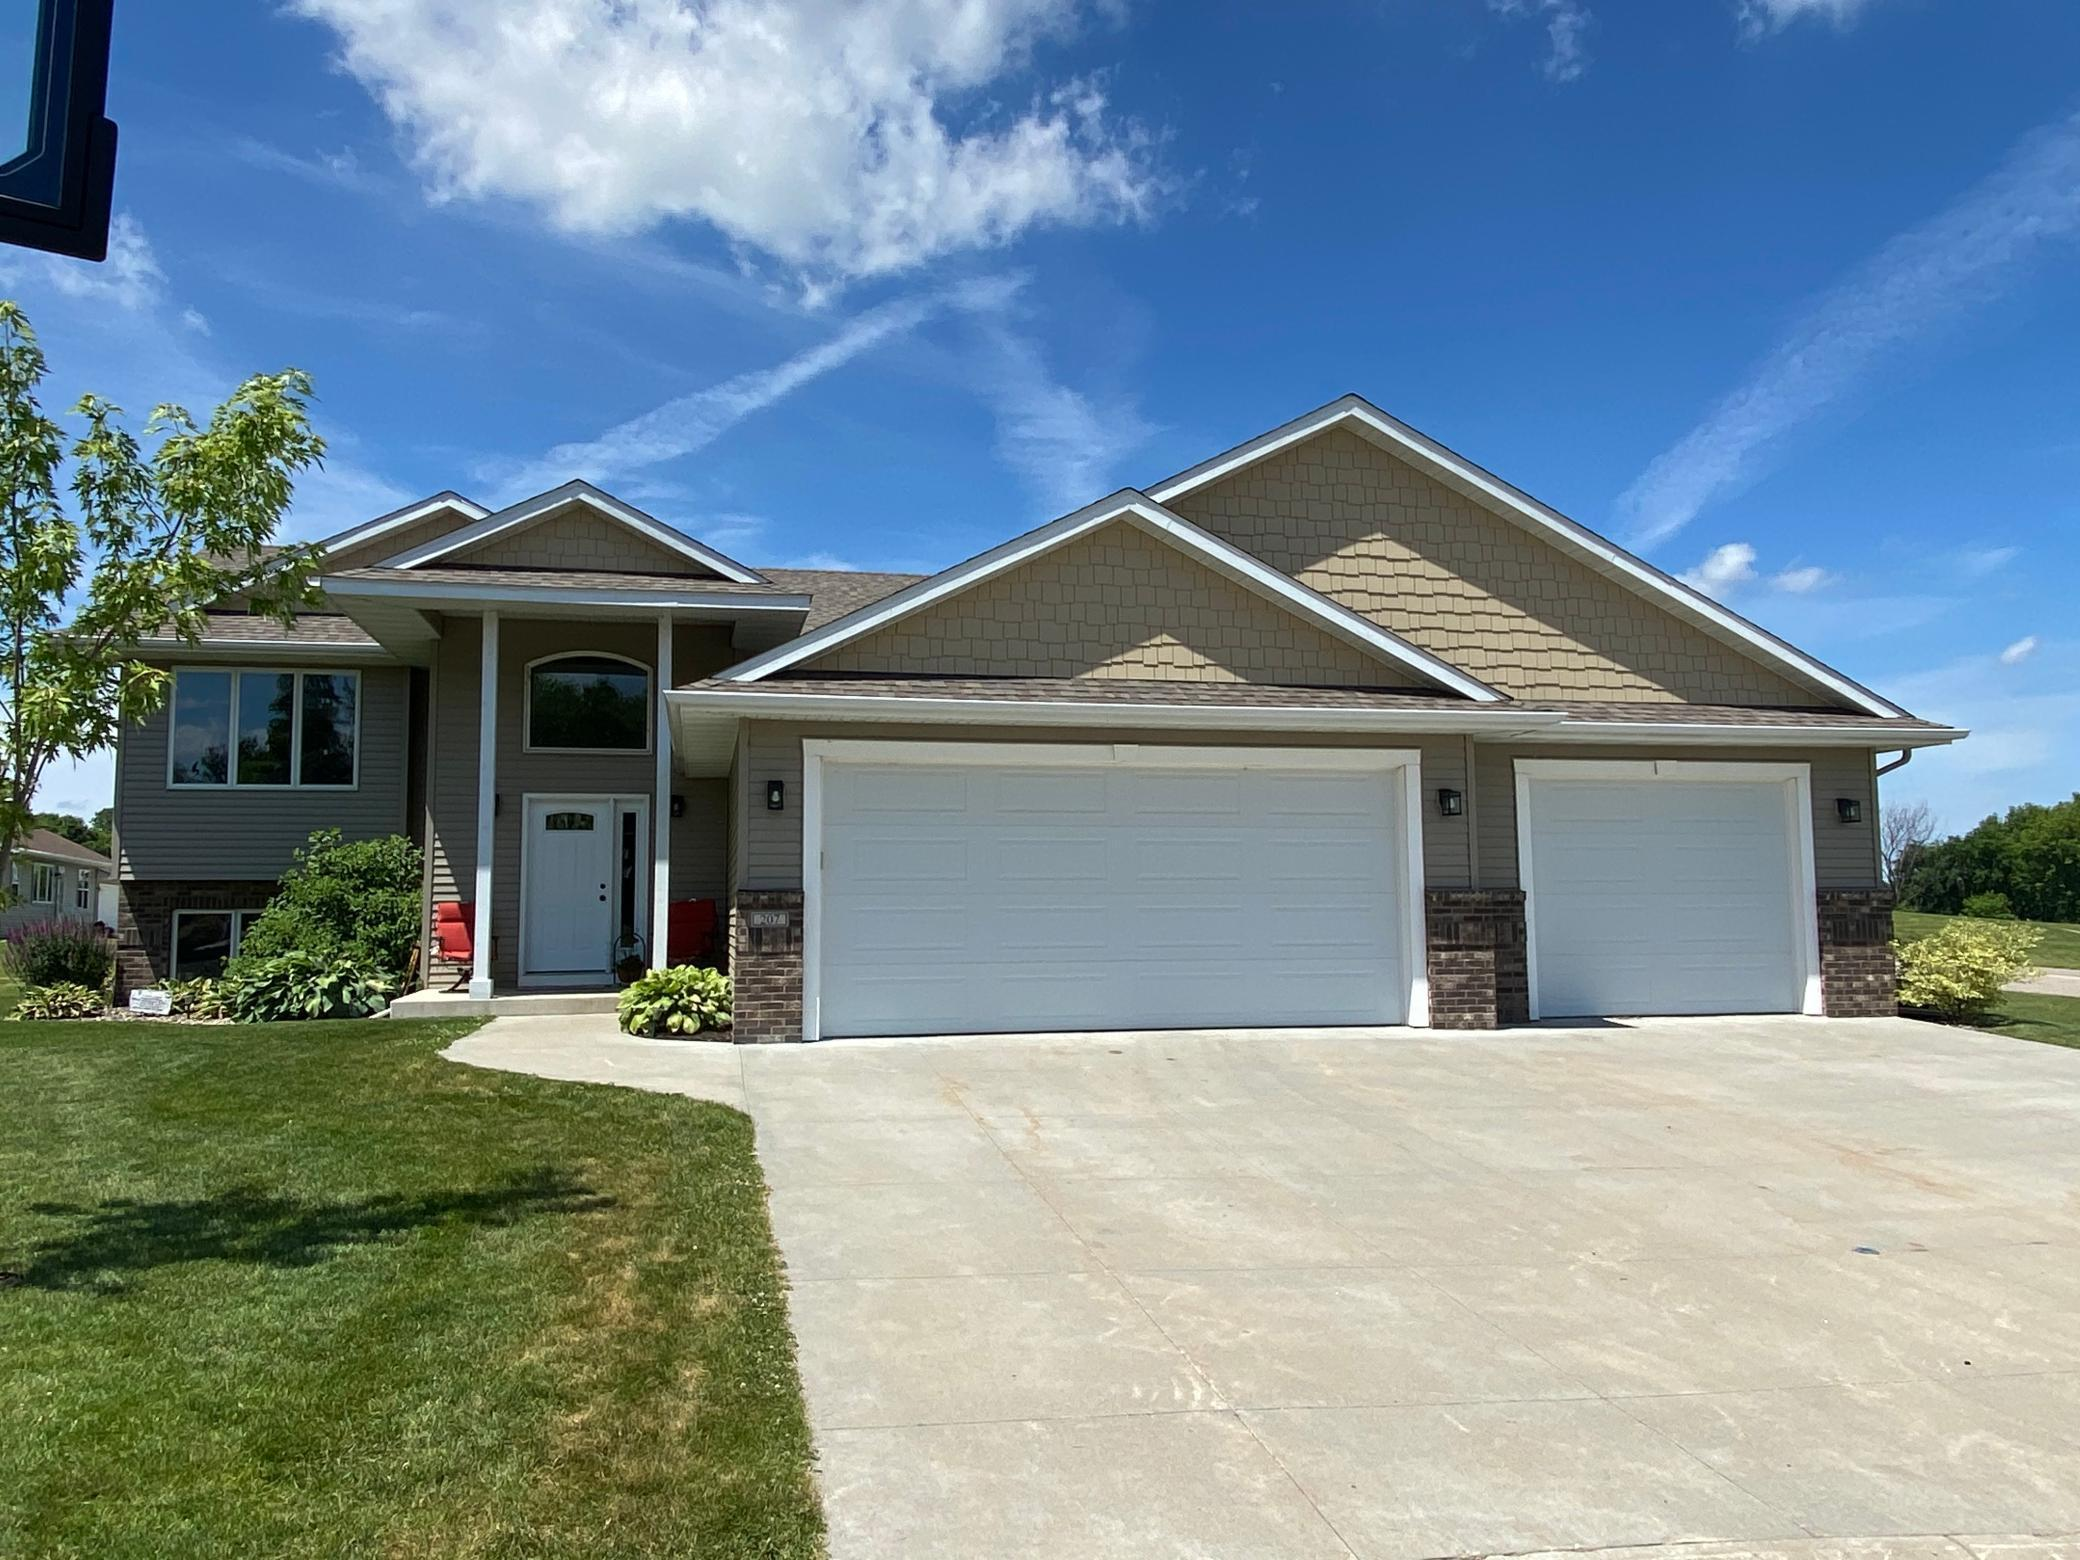 207 Francis S Property Photo - Elysian, MN real estate listing